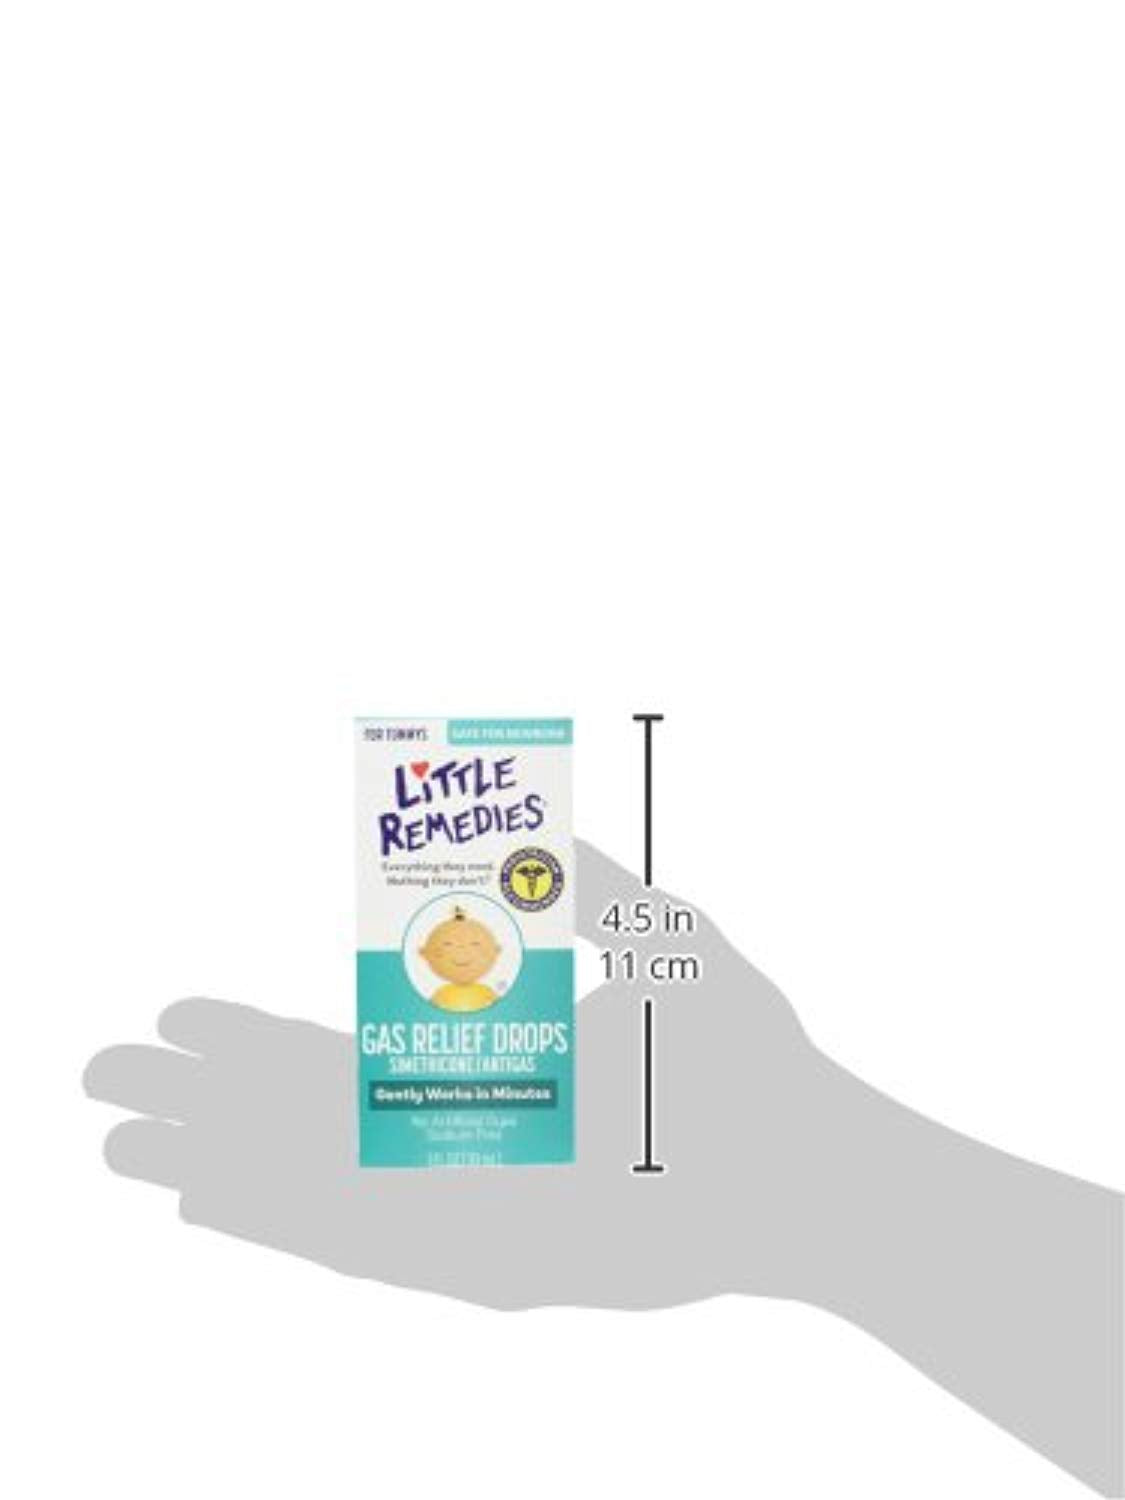 Little Remedies Gas Relief Drops | Natural Berry Flavor | 1 oz. | Pack of 3 | Gently Works in Minutes | Safe for Newborns